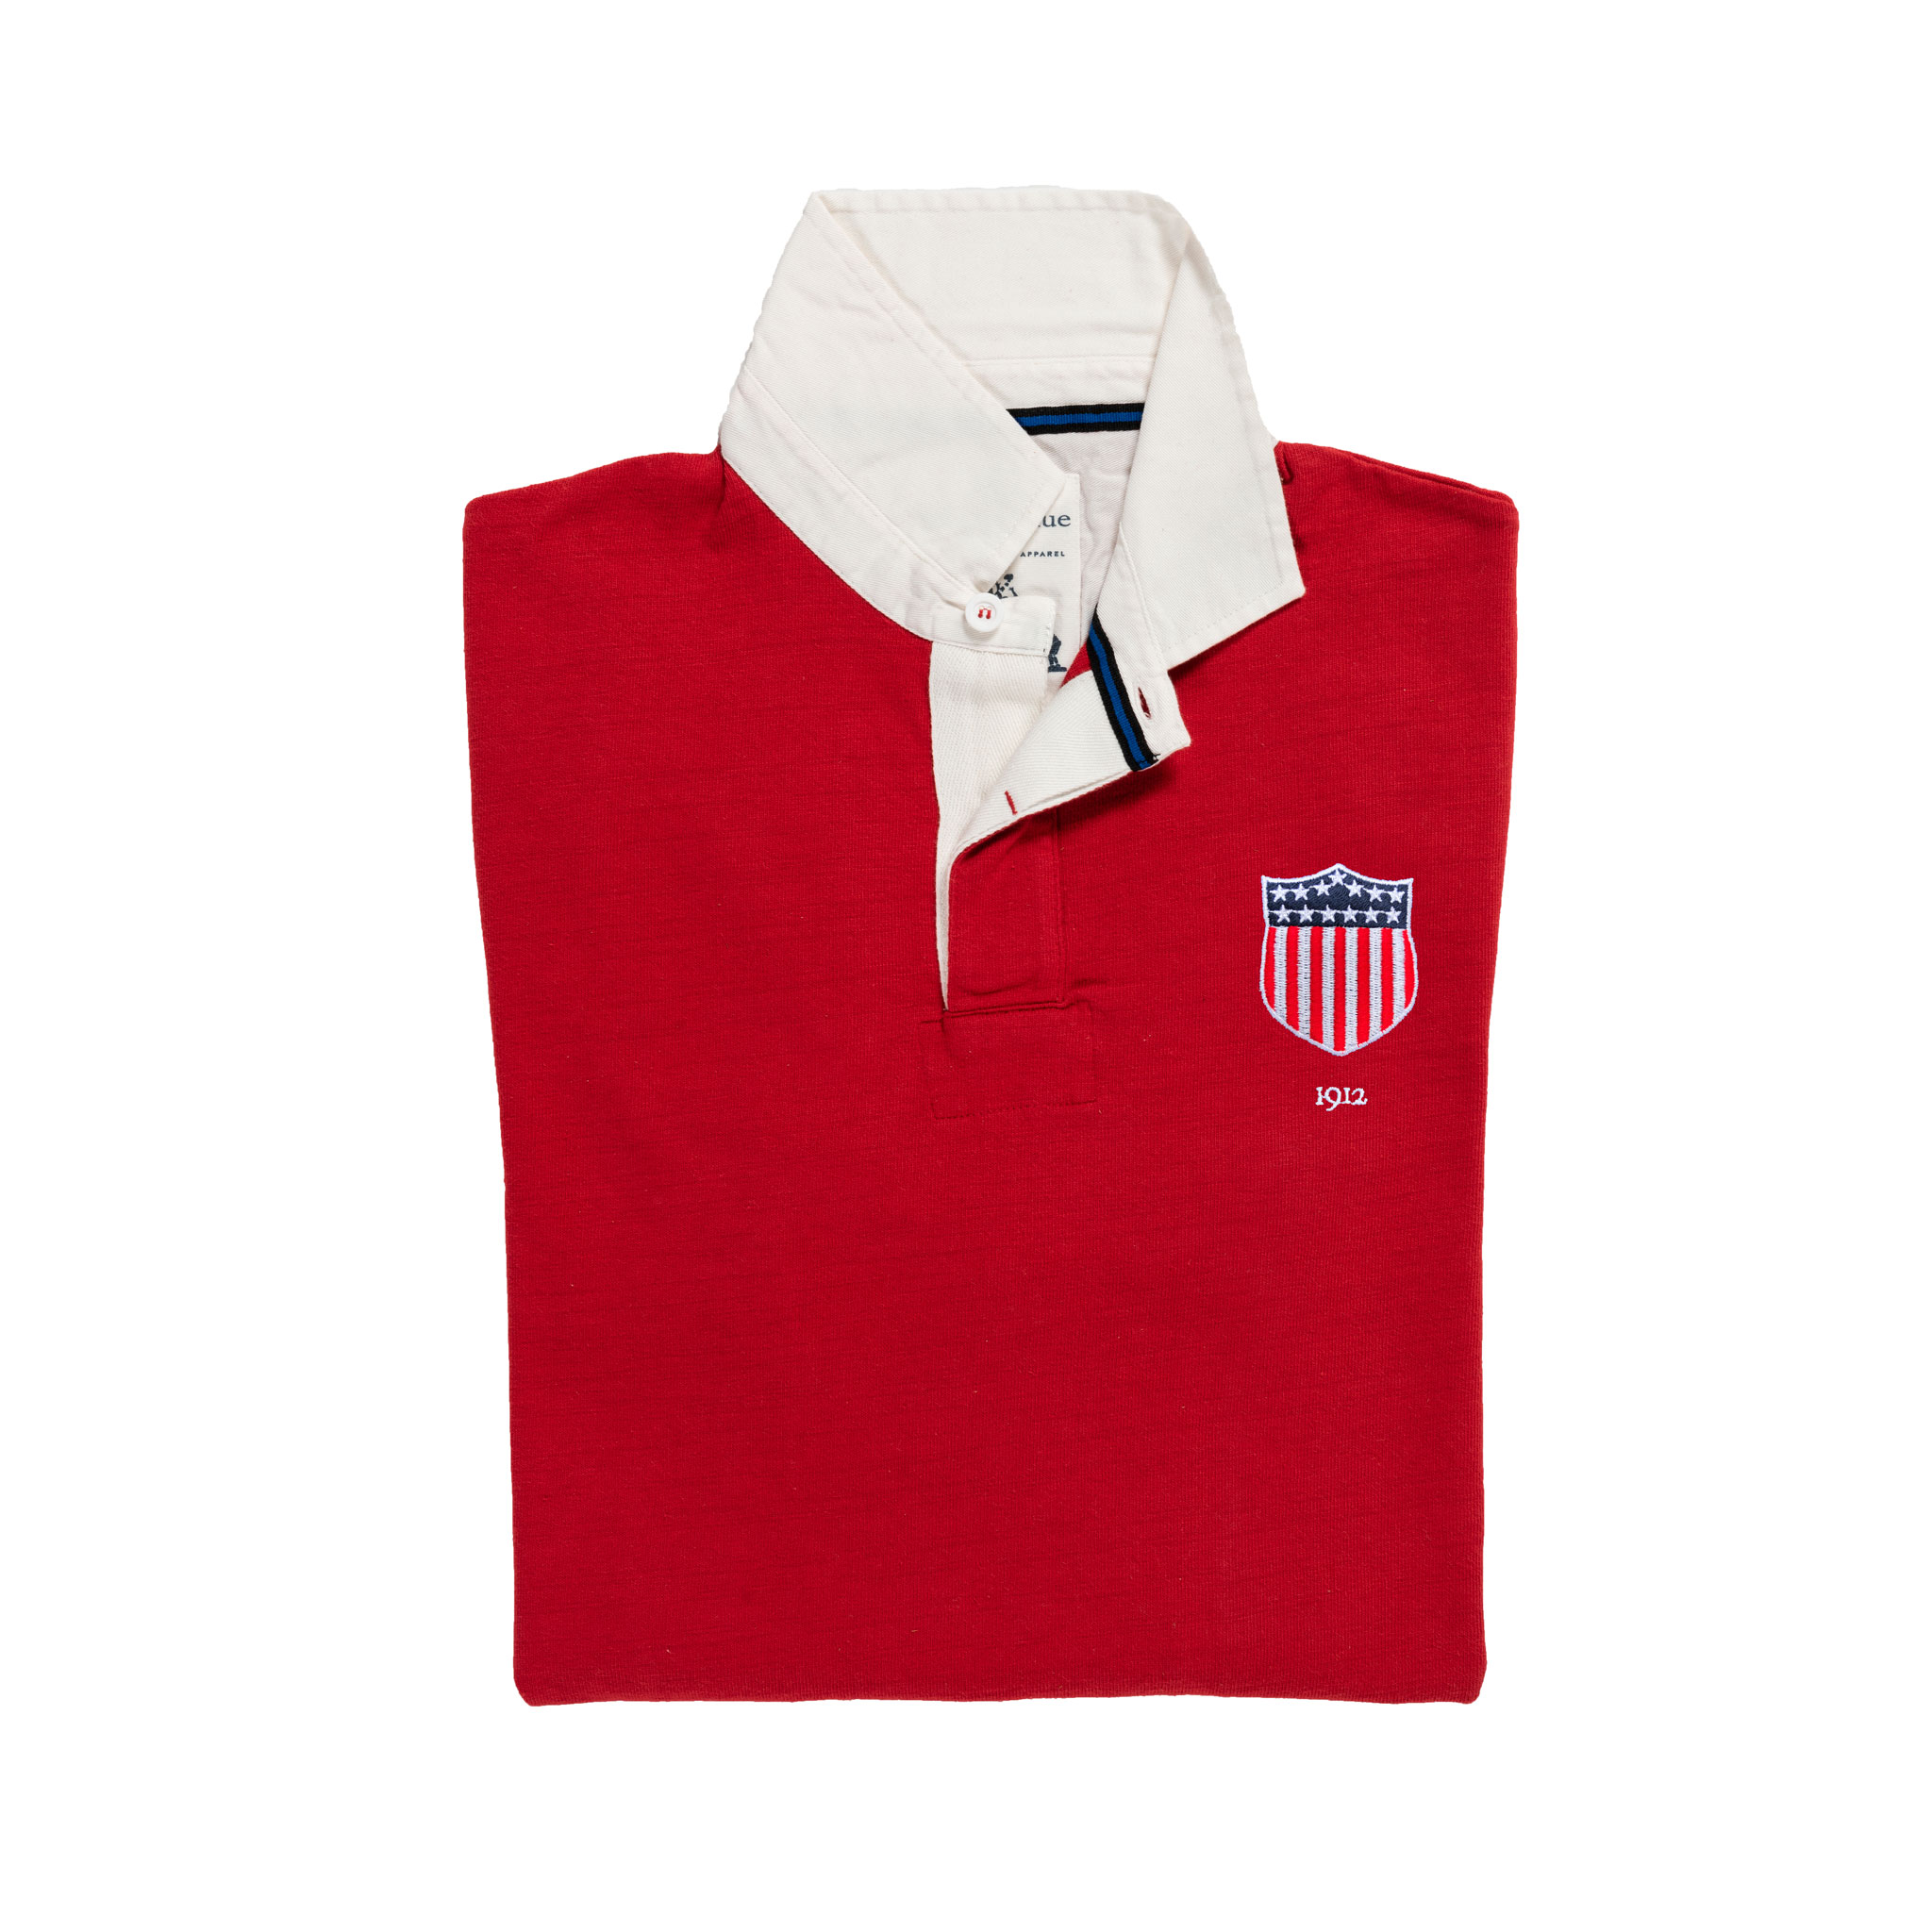 lUSA 1912 Vintage Rugby Shirt_Away_Red